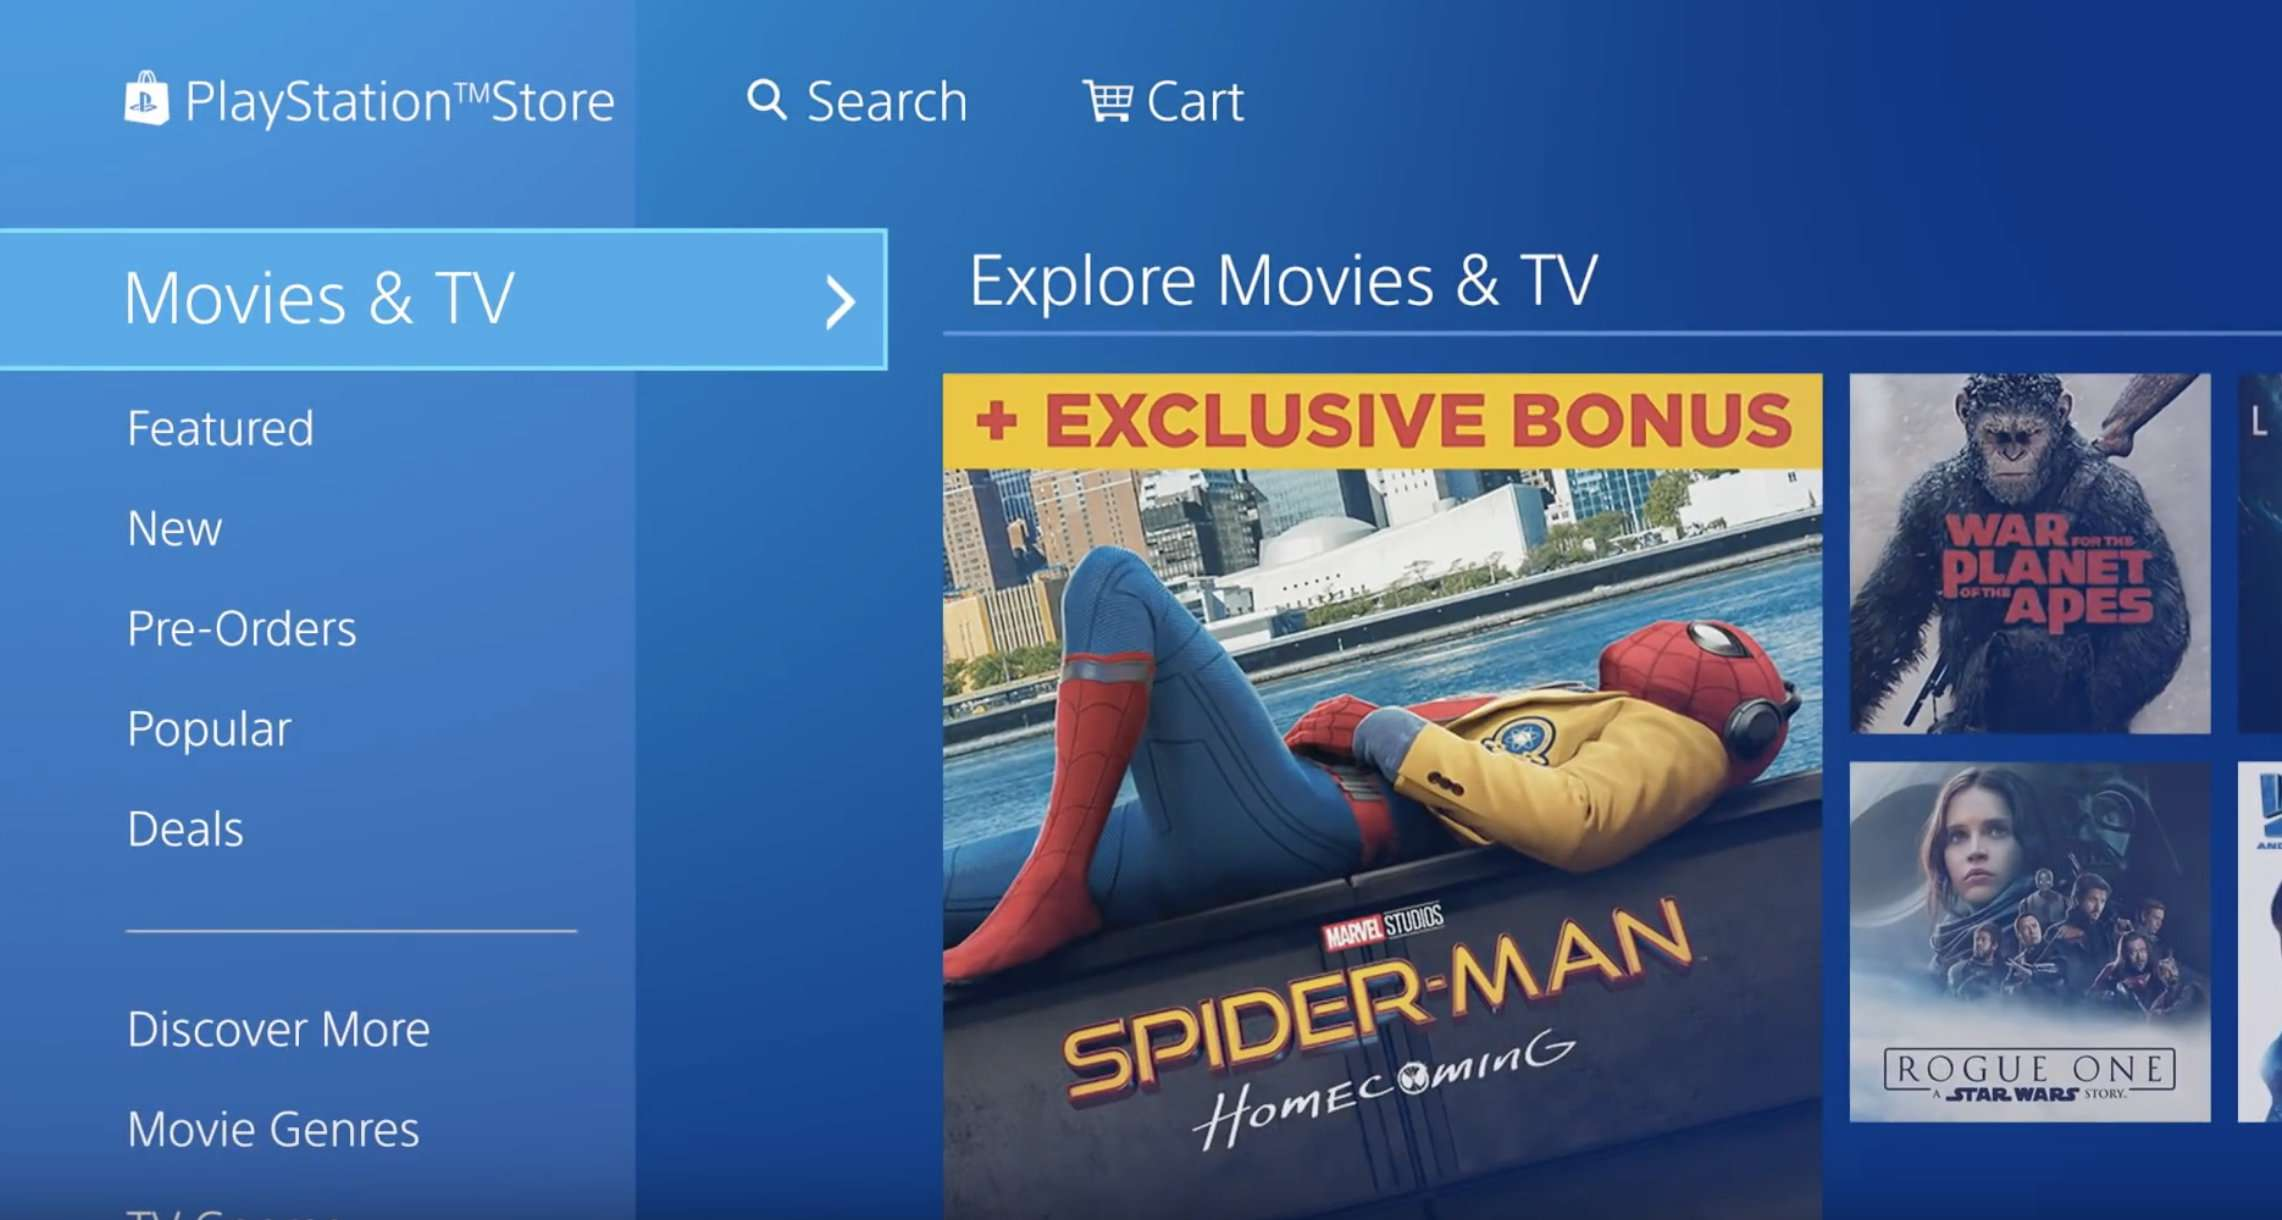 Sony Playstation Store and available movies to rent.